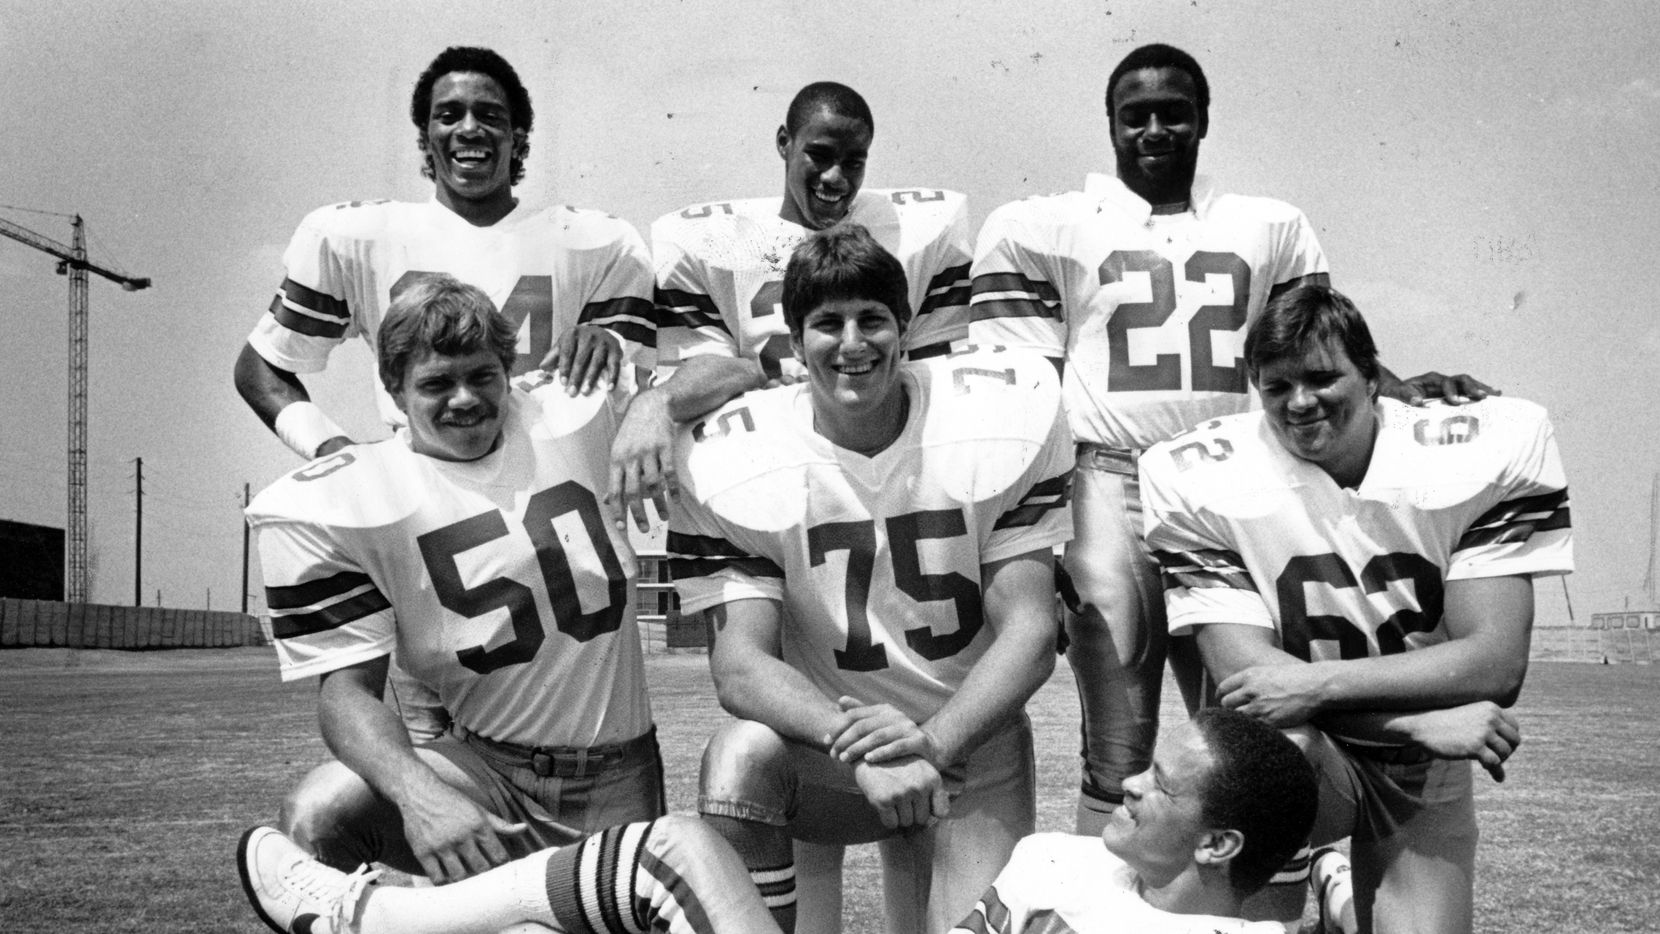 Dallas Cowboys - Picture Day, 1982 - Top row, from left:   Monty Hunter, Rod Hill, George Peoples; center: Jeff Rohrer, Phil Pozderac, Brian Baldinger; bottom: Butch Johnson